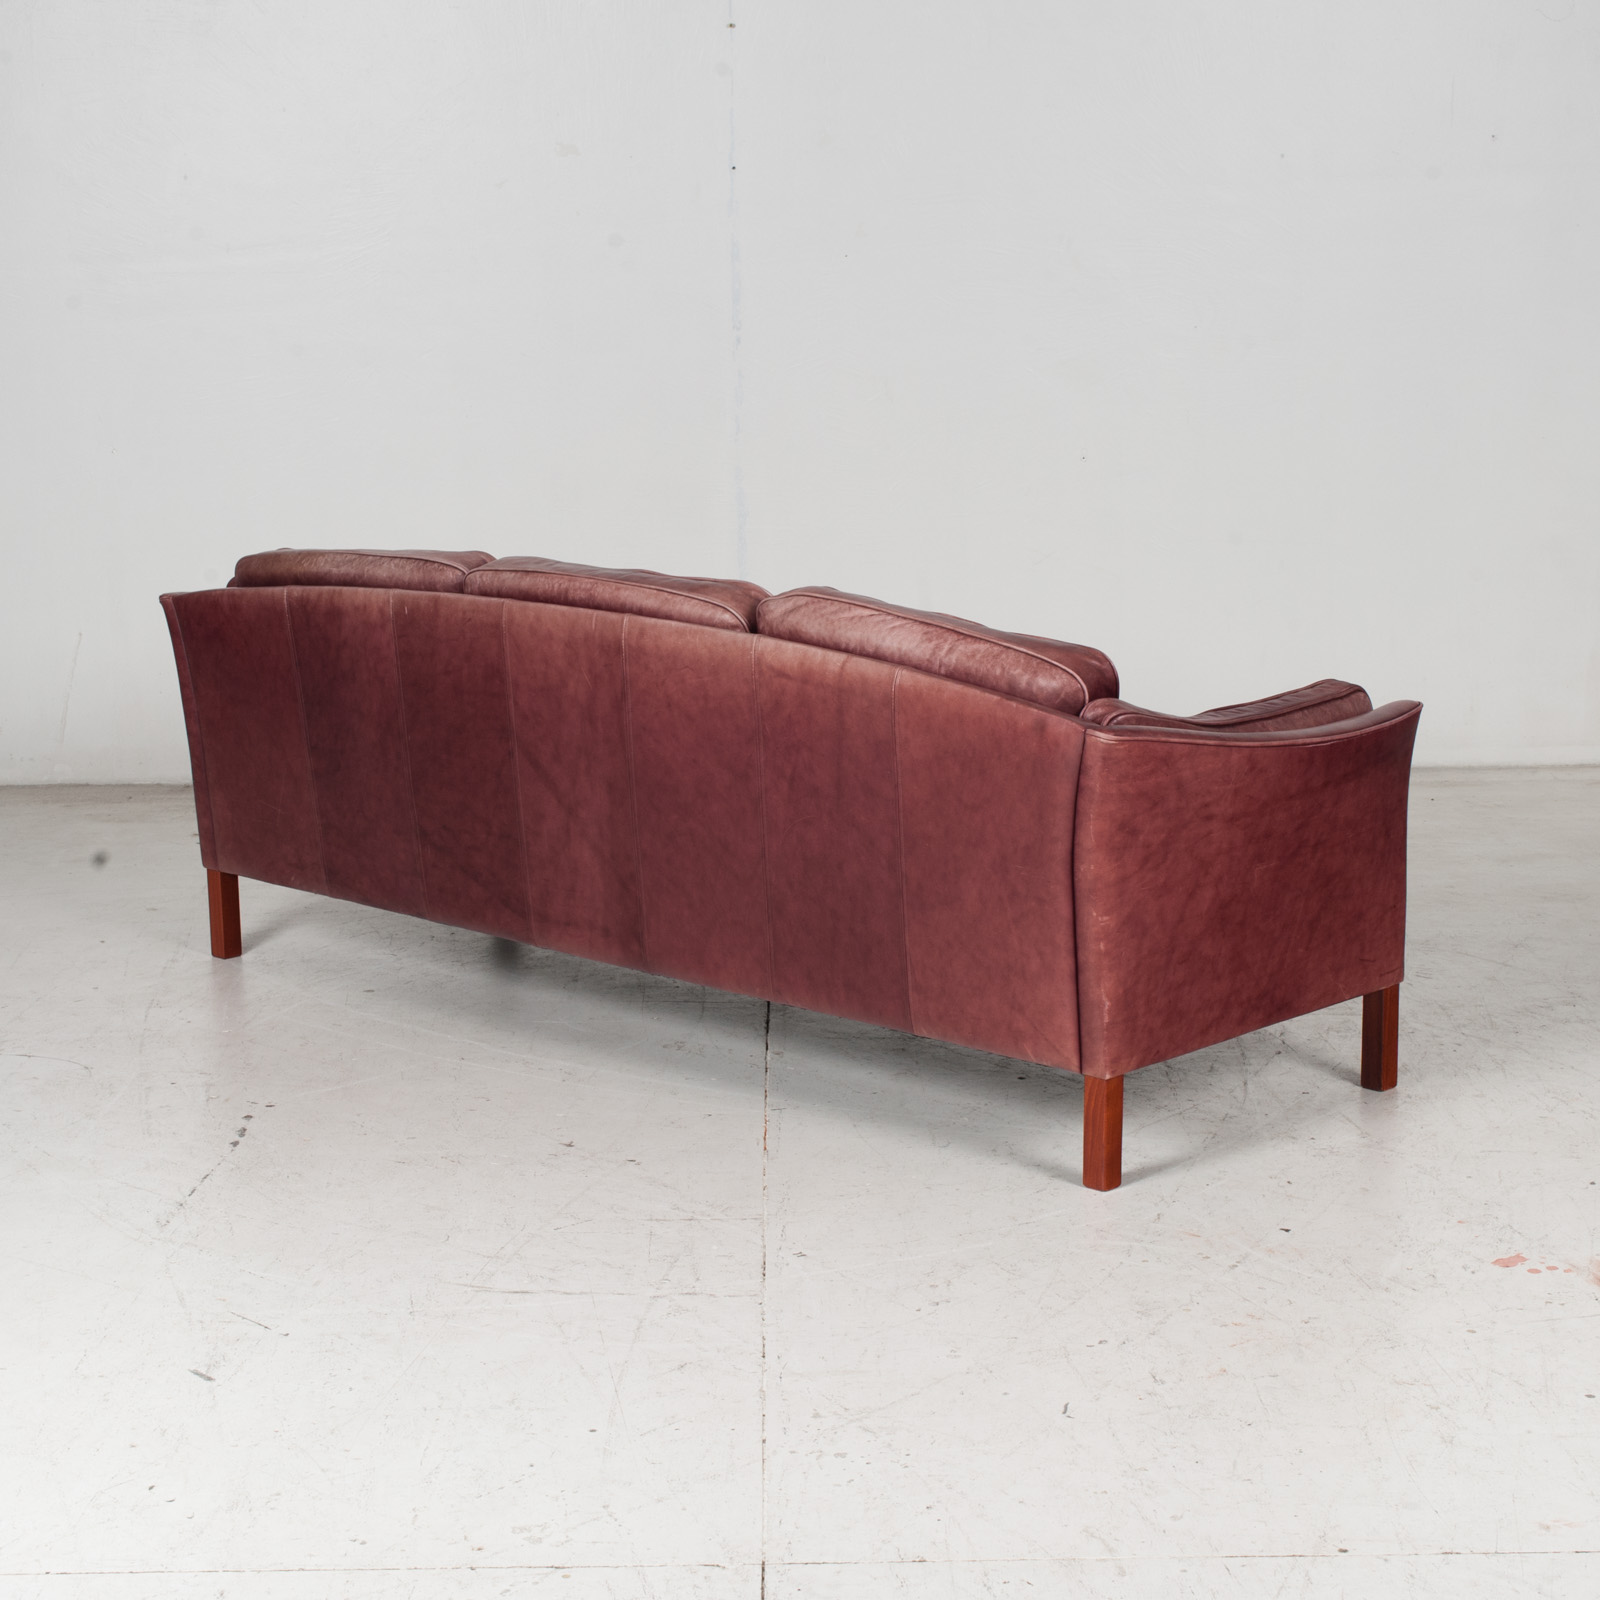 3 Seat Sofa By Mogens Hansen In Red Leather, 1960s, Denmark 7